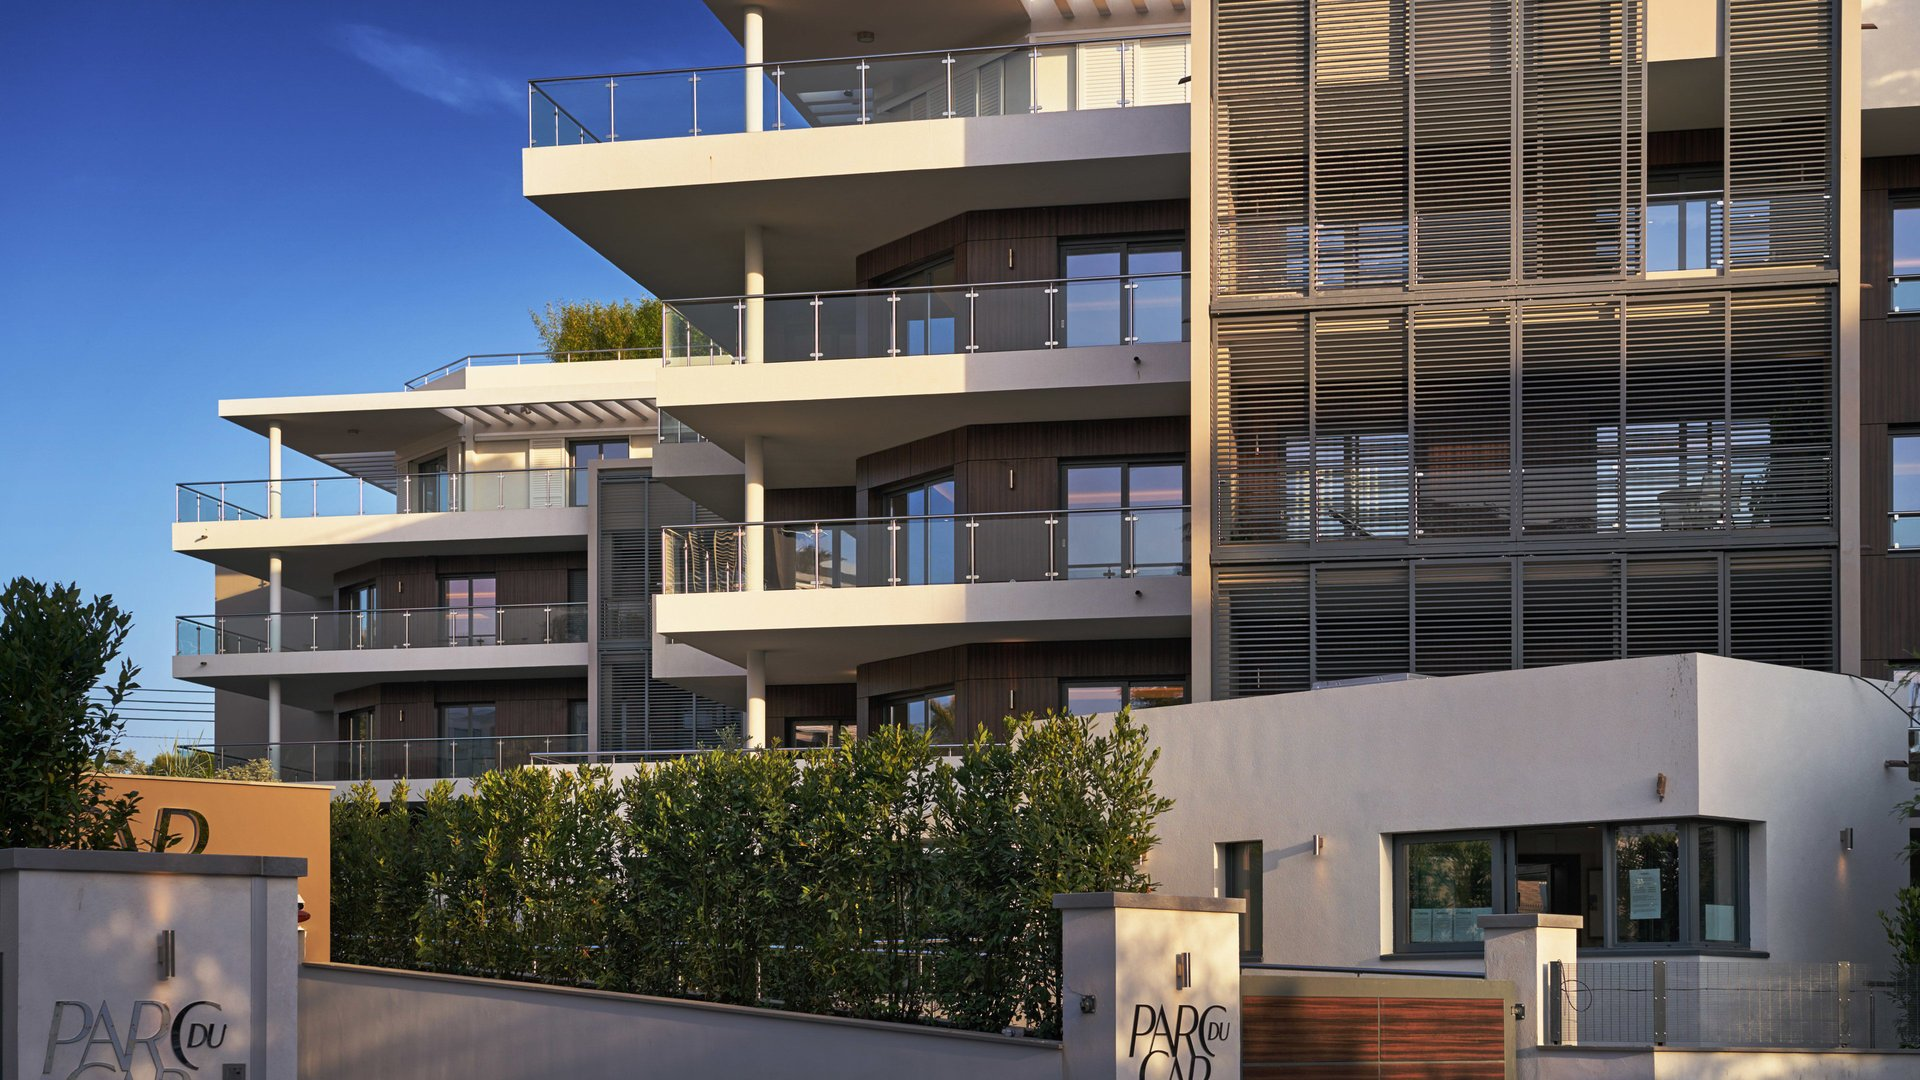 CAP D'ANTIBES -  New 2 bedroom apartement of 100m2 with large terraces in exceptional résidence